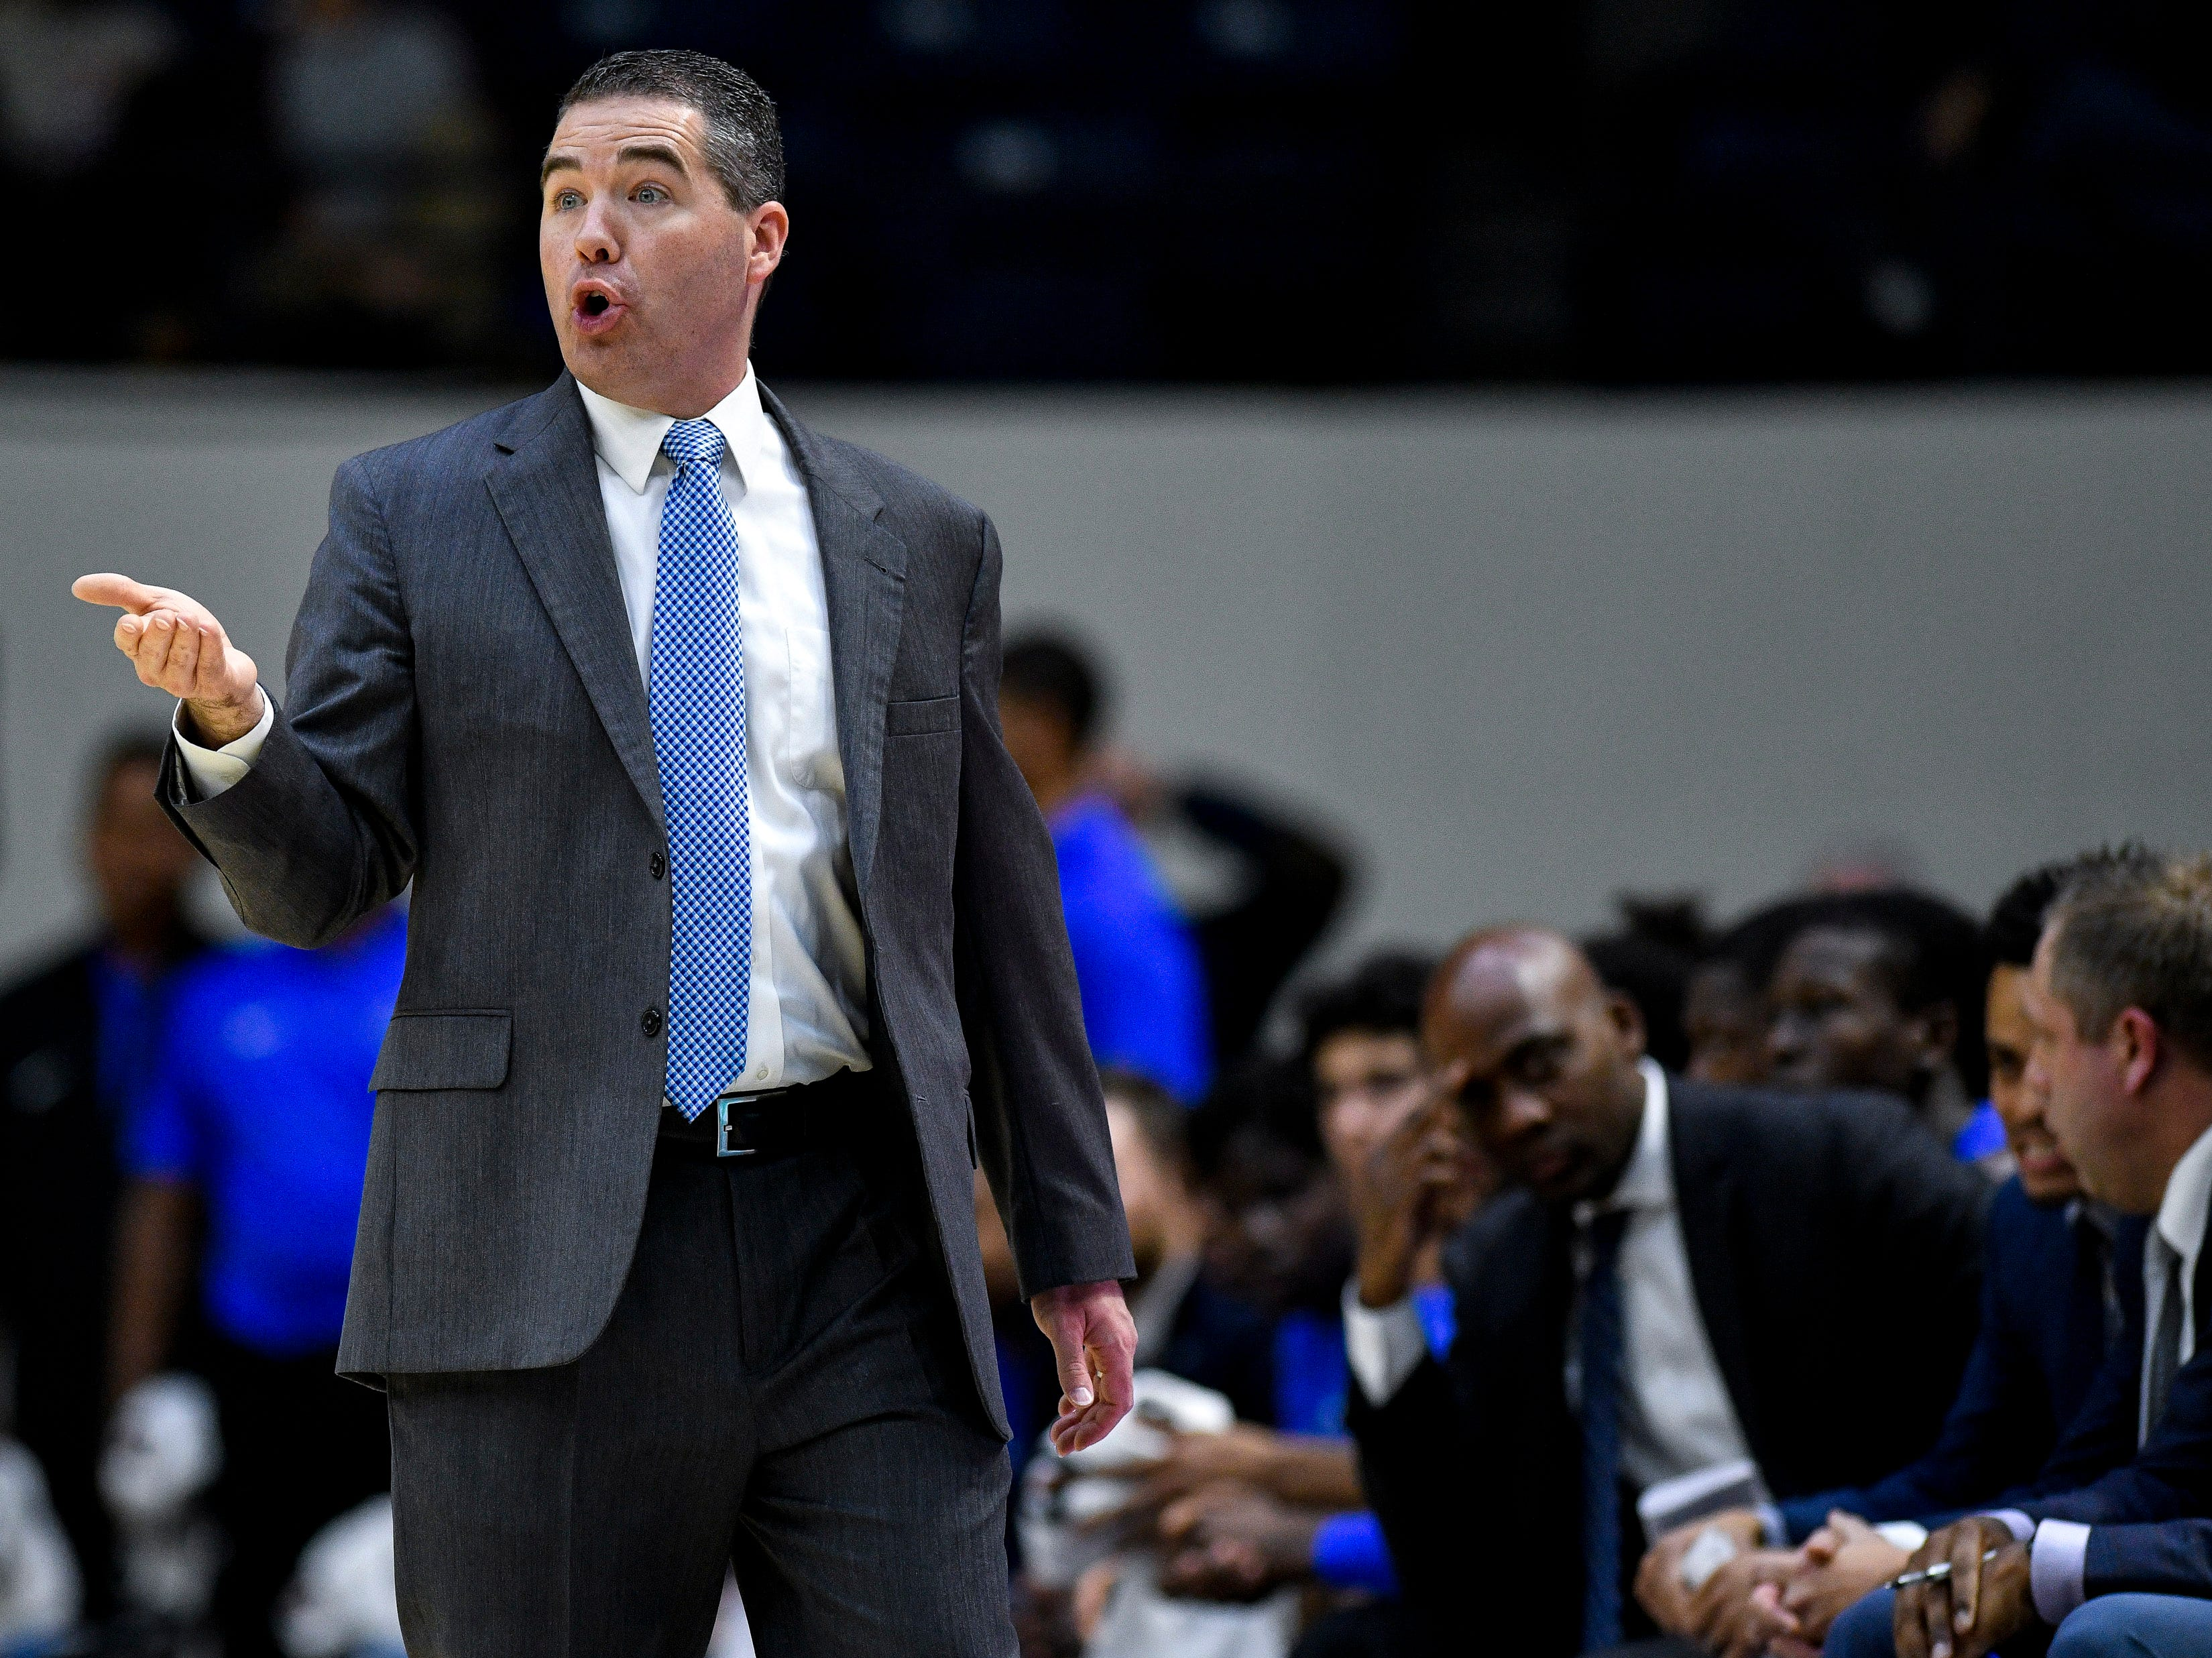 MTSU head coach Nick McDevitt works with his team against Belmont during the first half at the Curb Event Center Arena in Nashville, Tenn., Monday, Nov. 12, 2018.